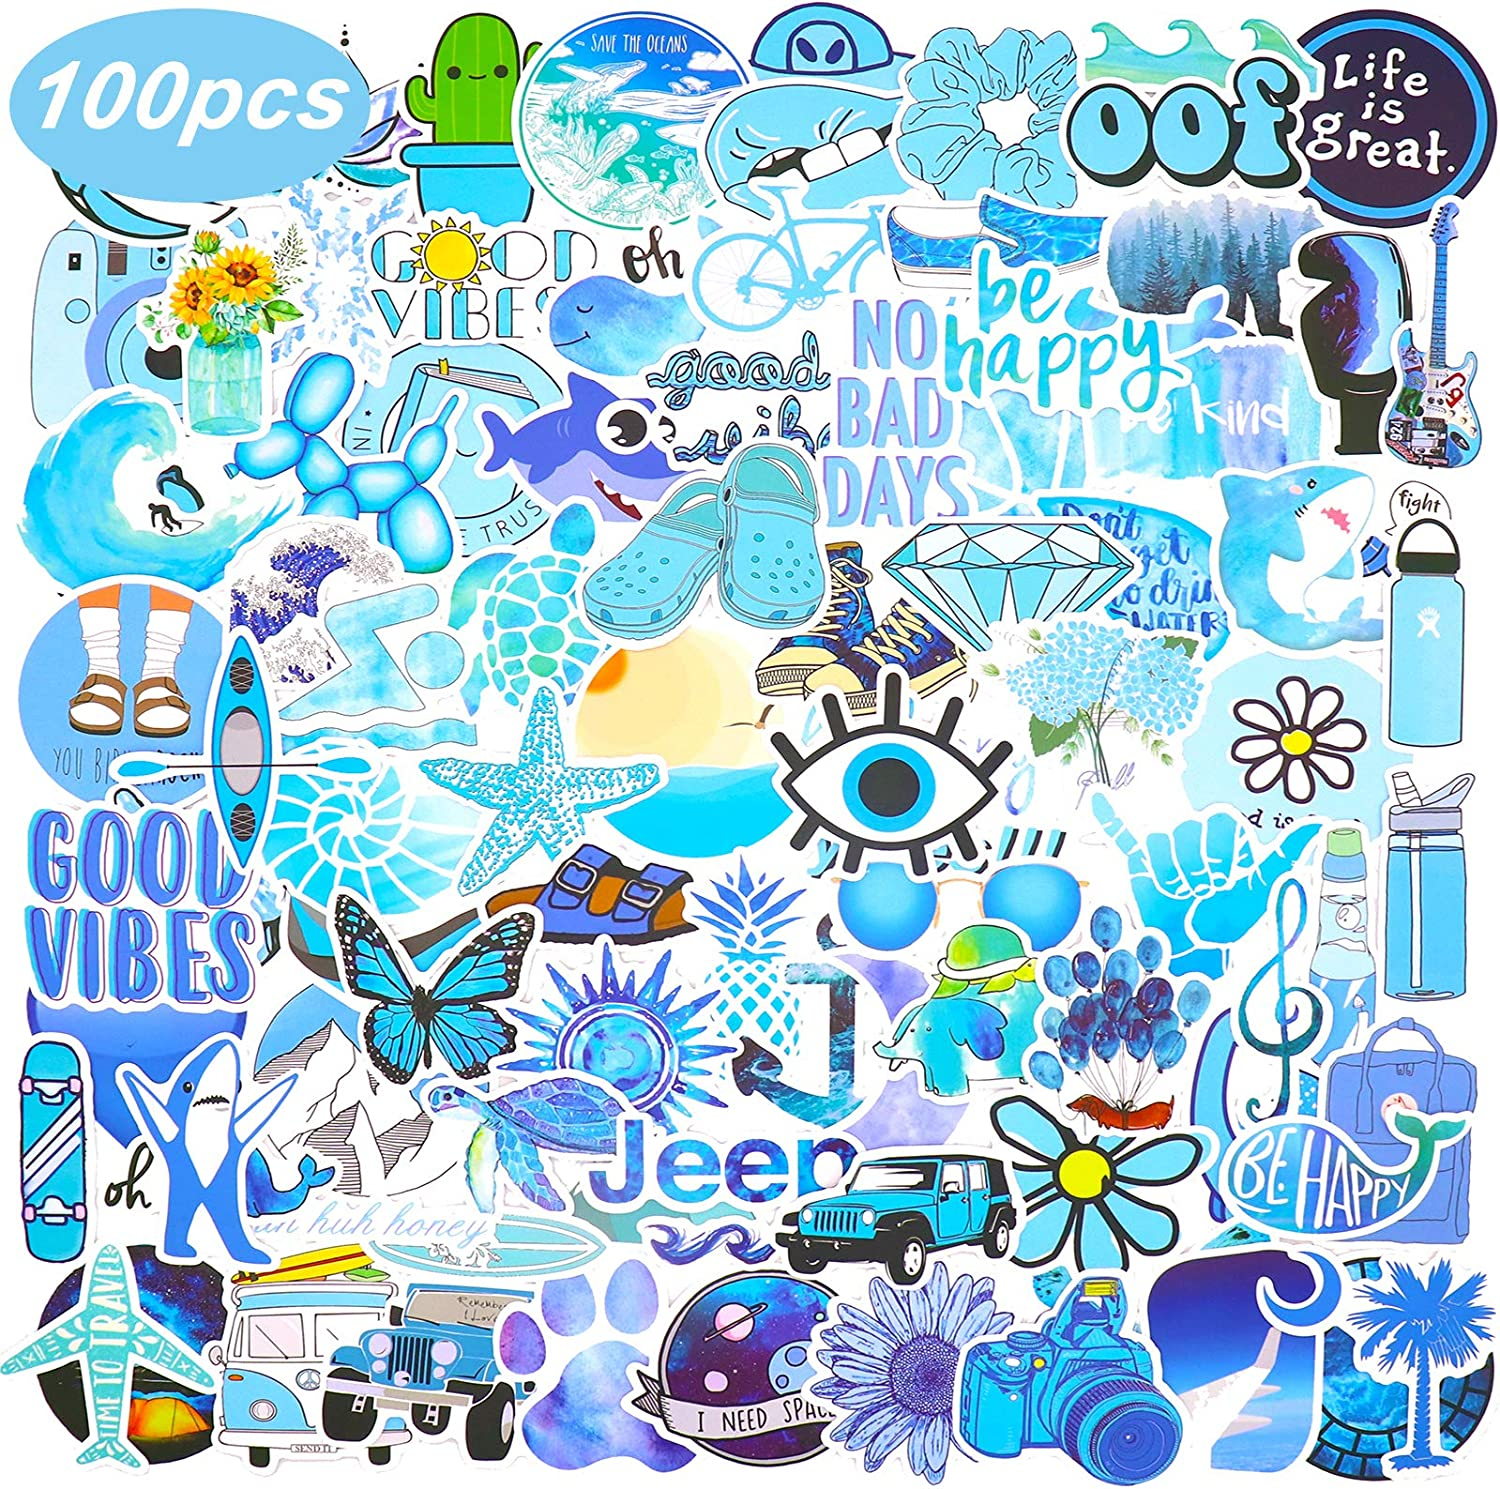 JOINBO 100 VSCO Blue Stickers Stylish Cute Waterproof Vsco Stickers are Essential Materials for Becoming a Vsco Girl, Suitable for Tablets, Skateboards, Mobile Phones, Kettles, suitcases, Outdoor